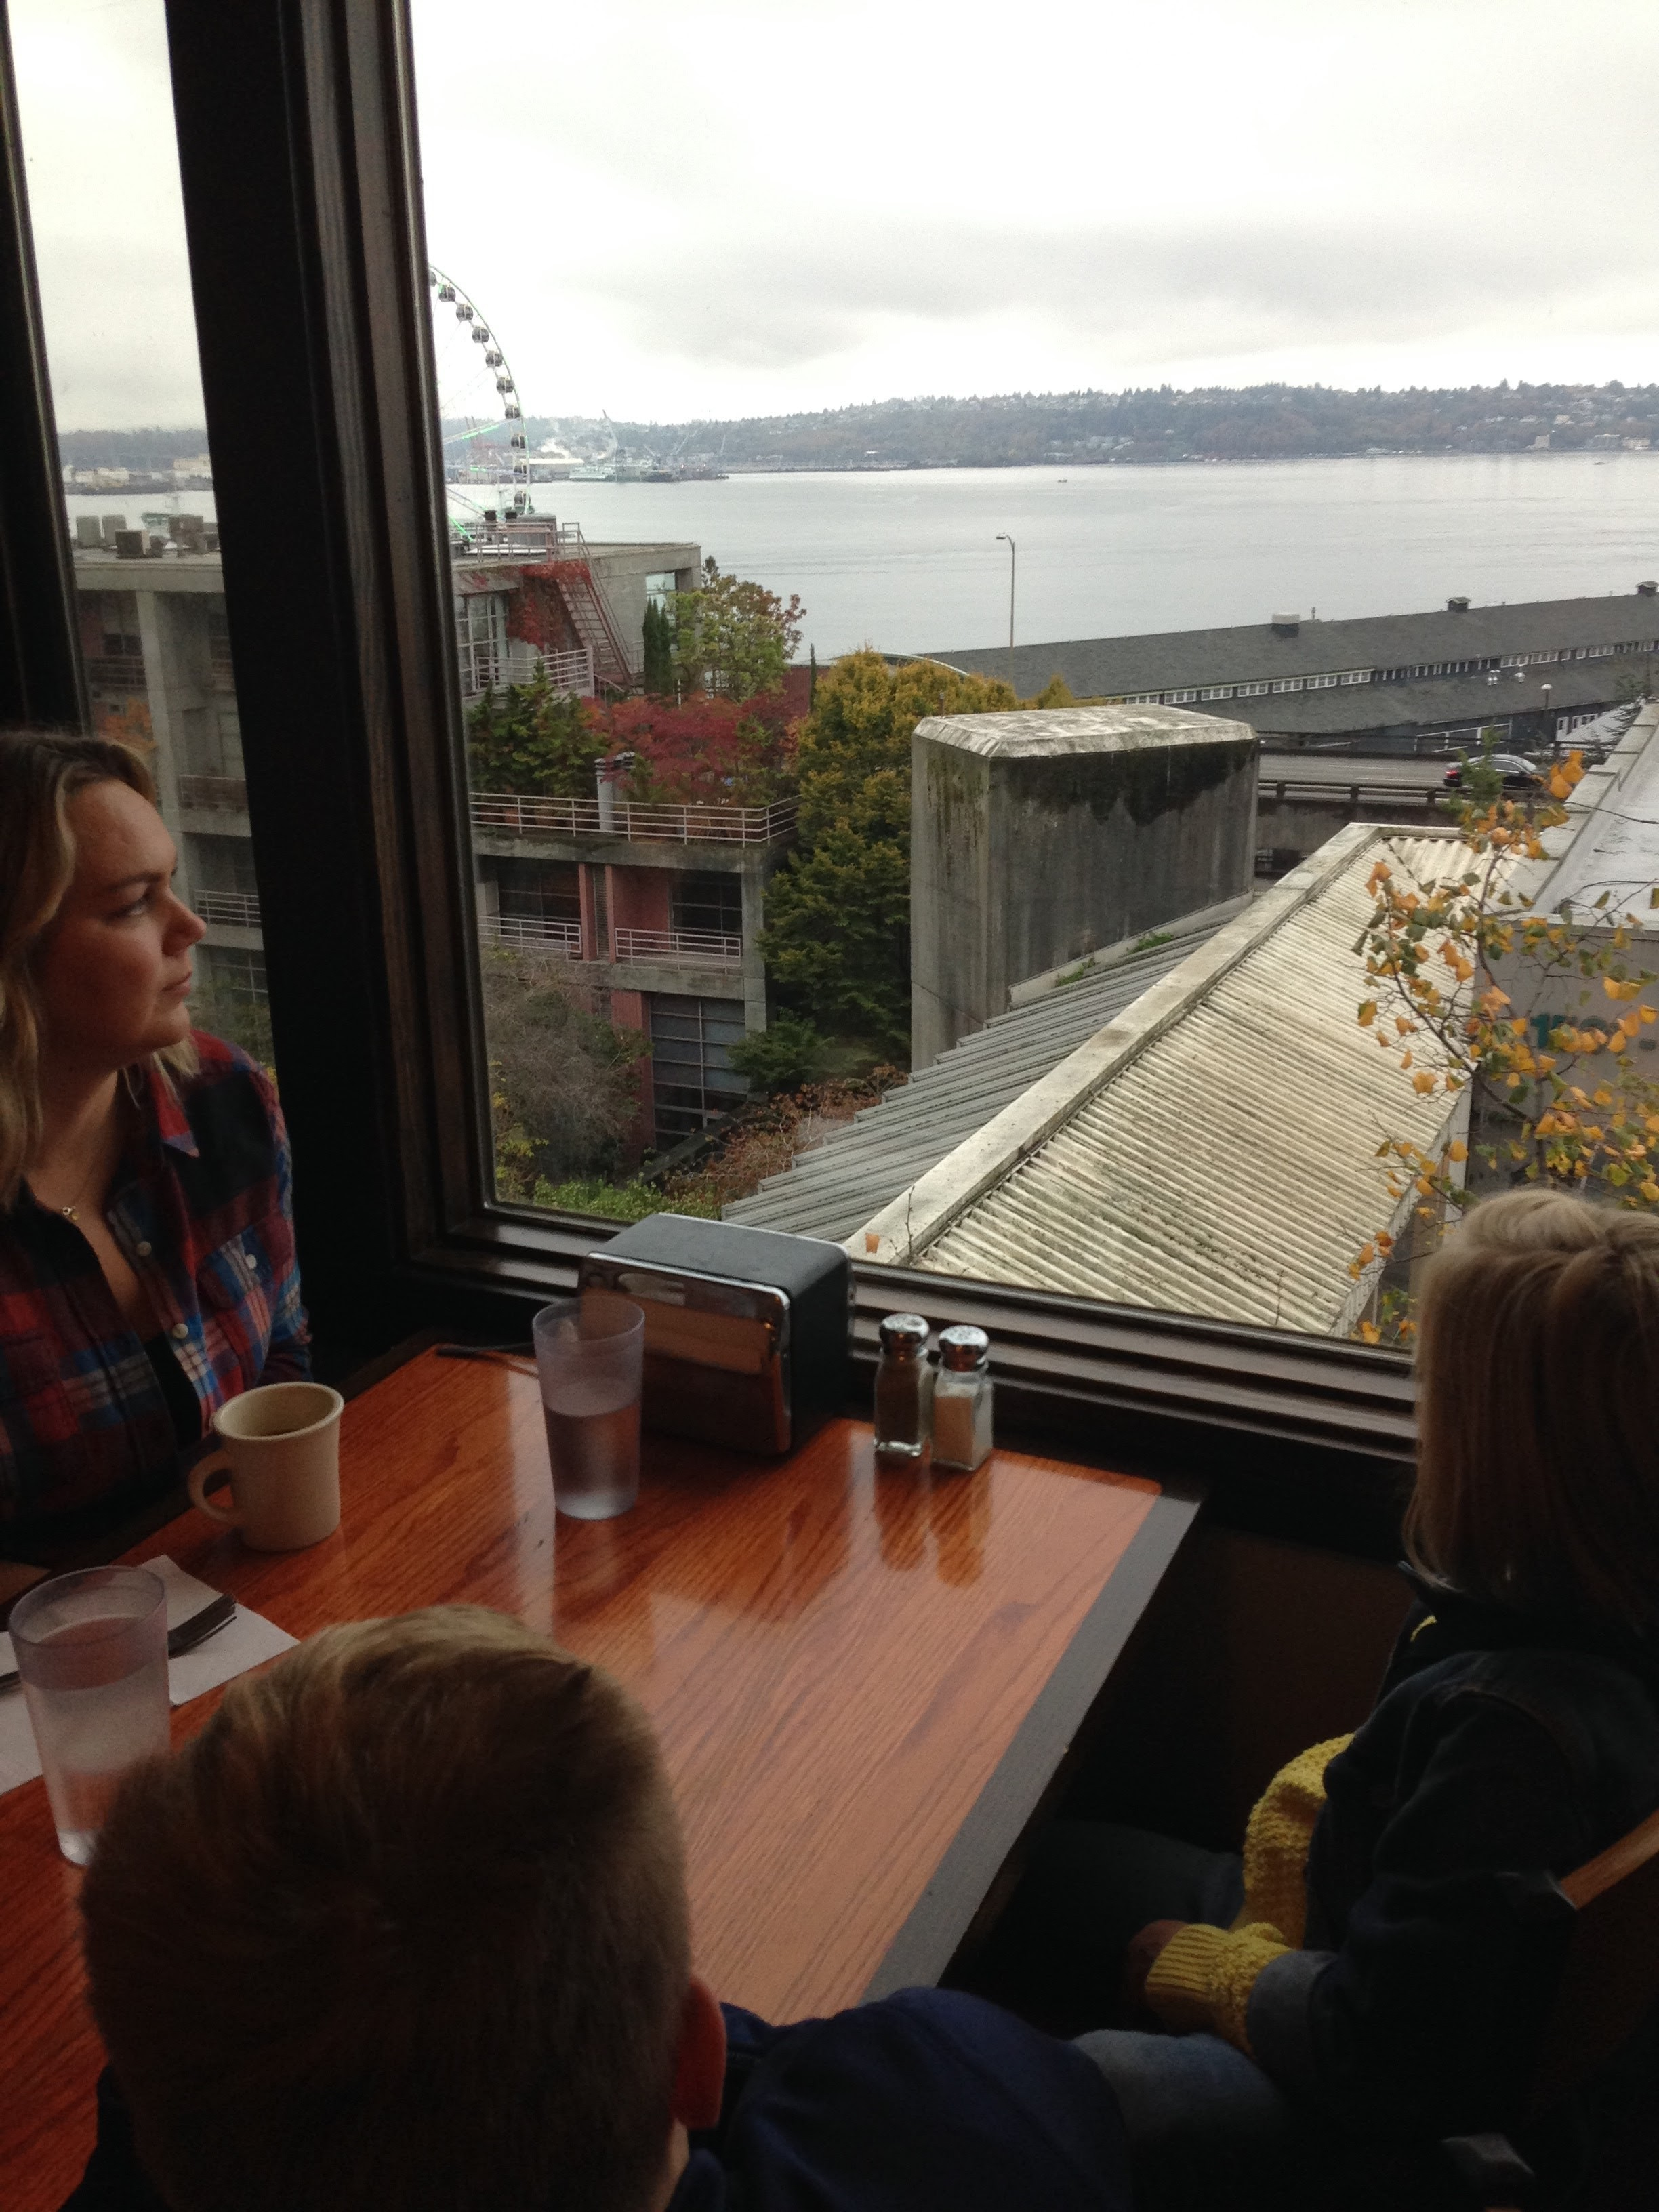 The humble Sound View Cafe - in Pike Place Market - has arguably one of the most affordable views on the Seattle Waterfront.